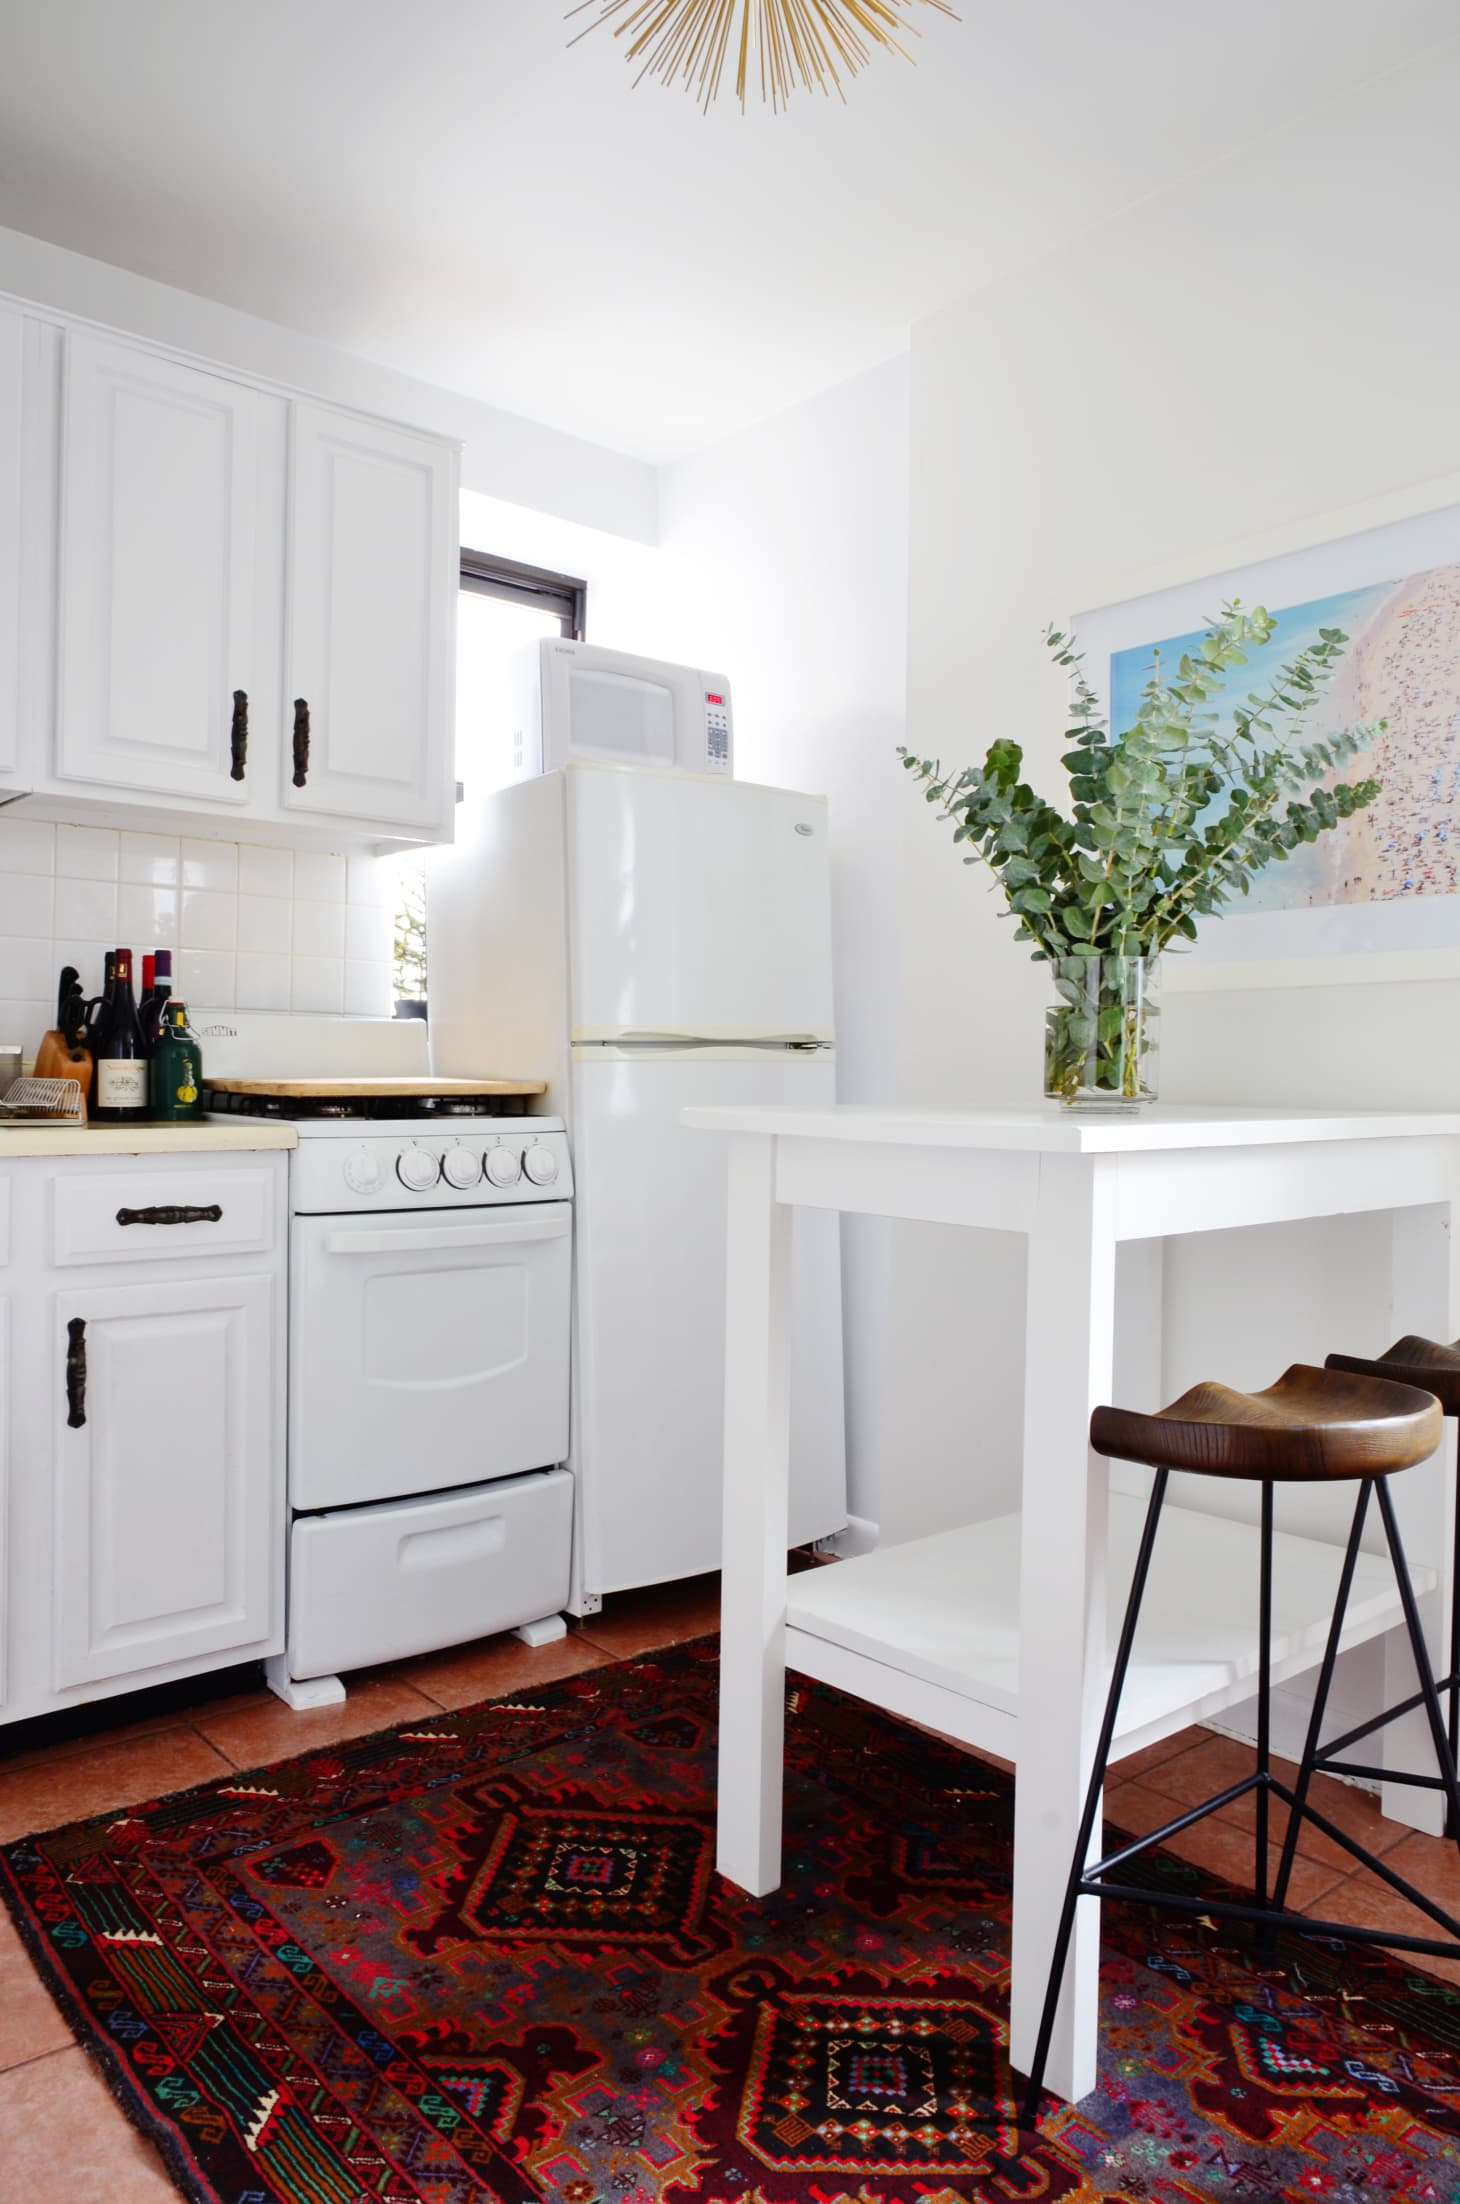 The Best Paint Colors for Your Small Rooms | Apartment Therapy